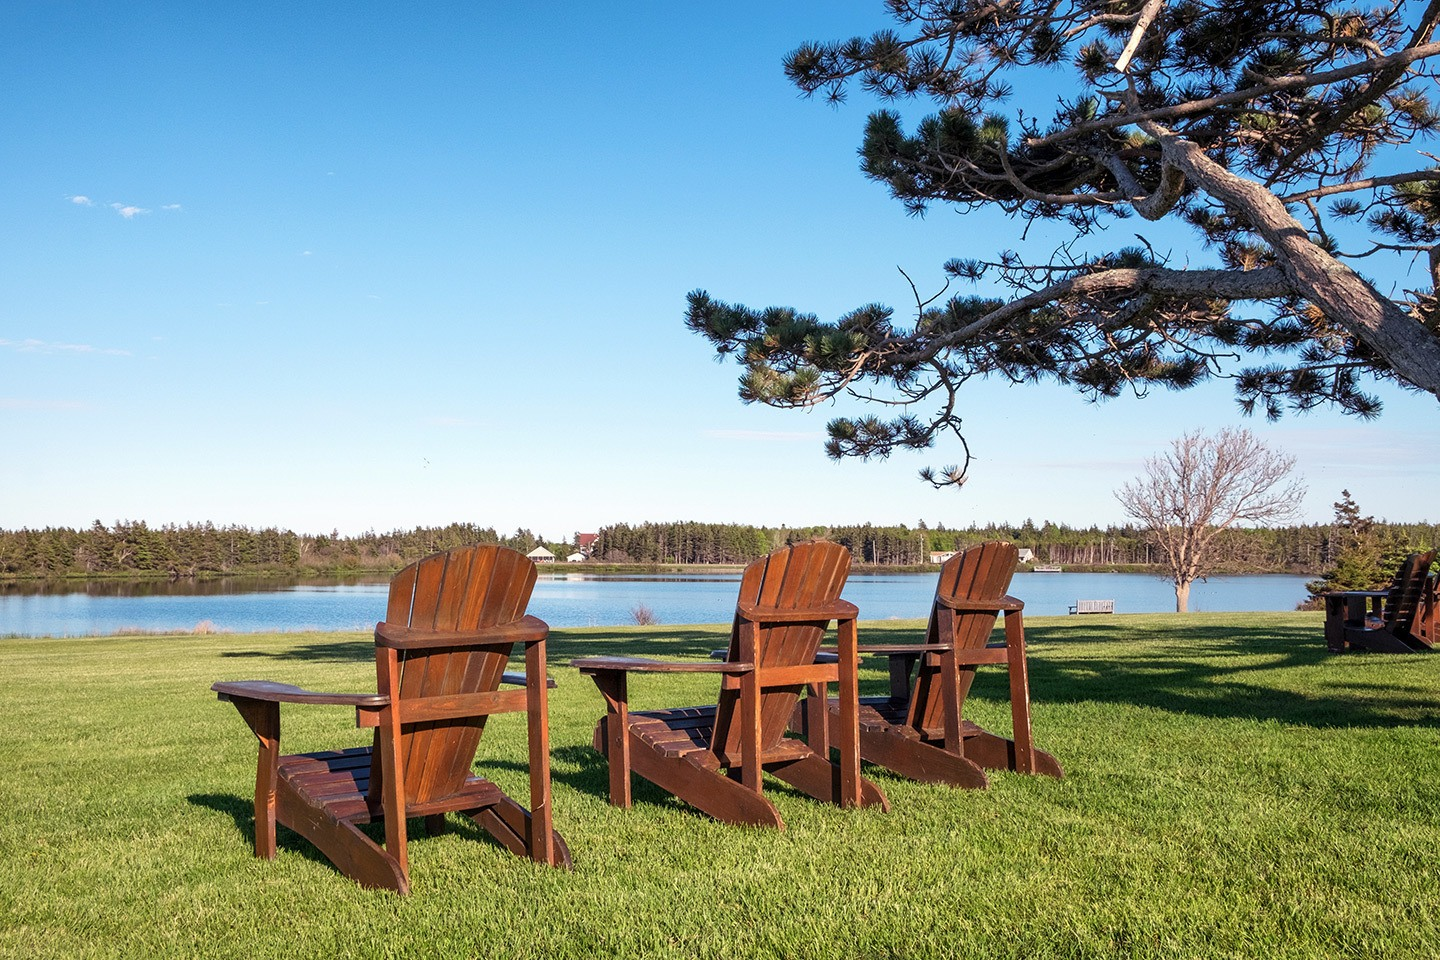 Seats by the water in Prince Edward Island, Canada